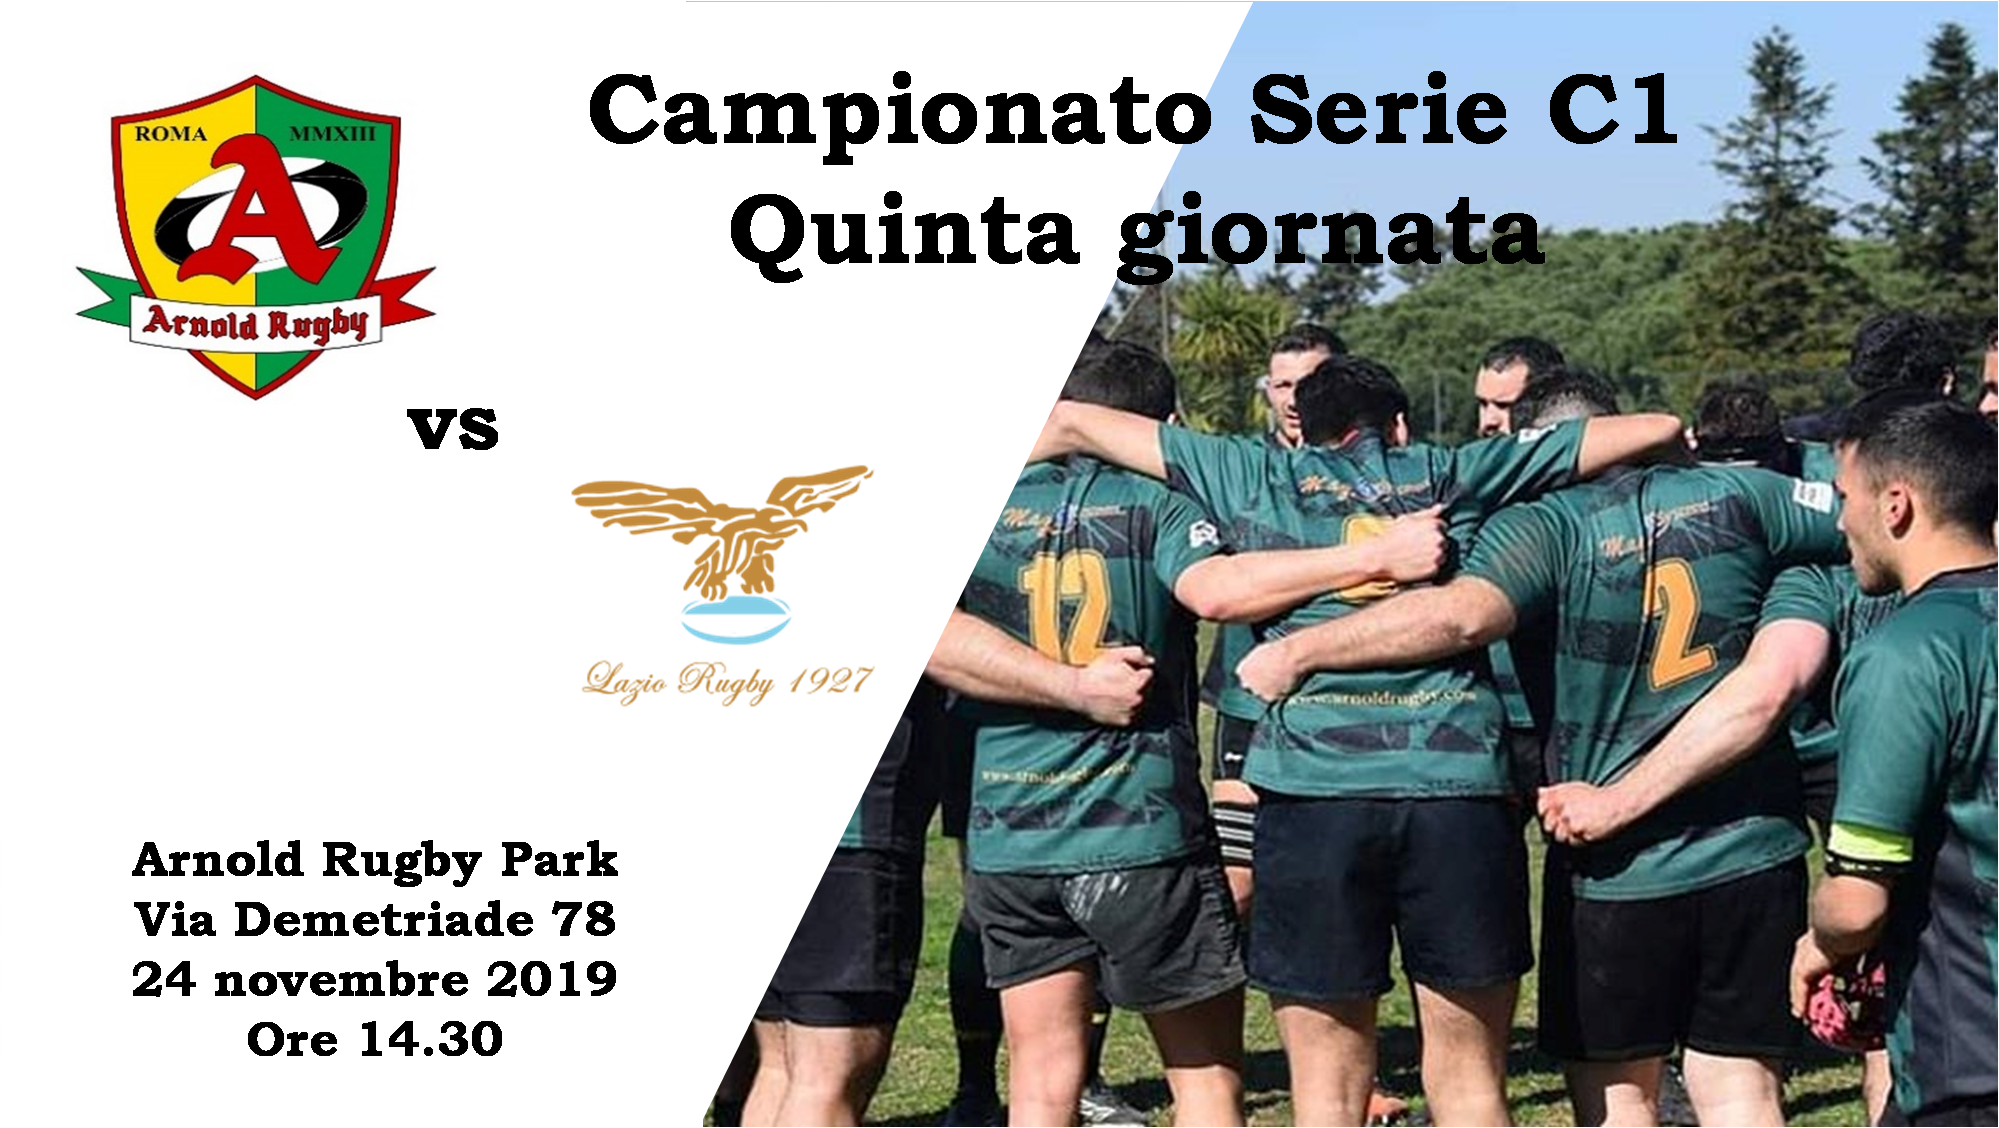 24 novembre all'Arnold Rugby Park